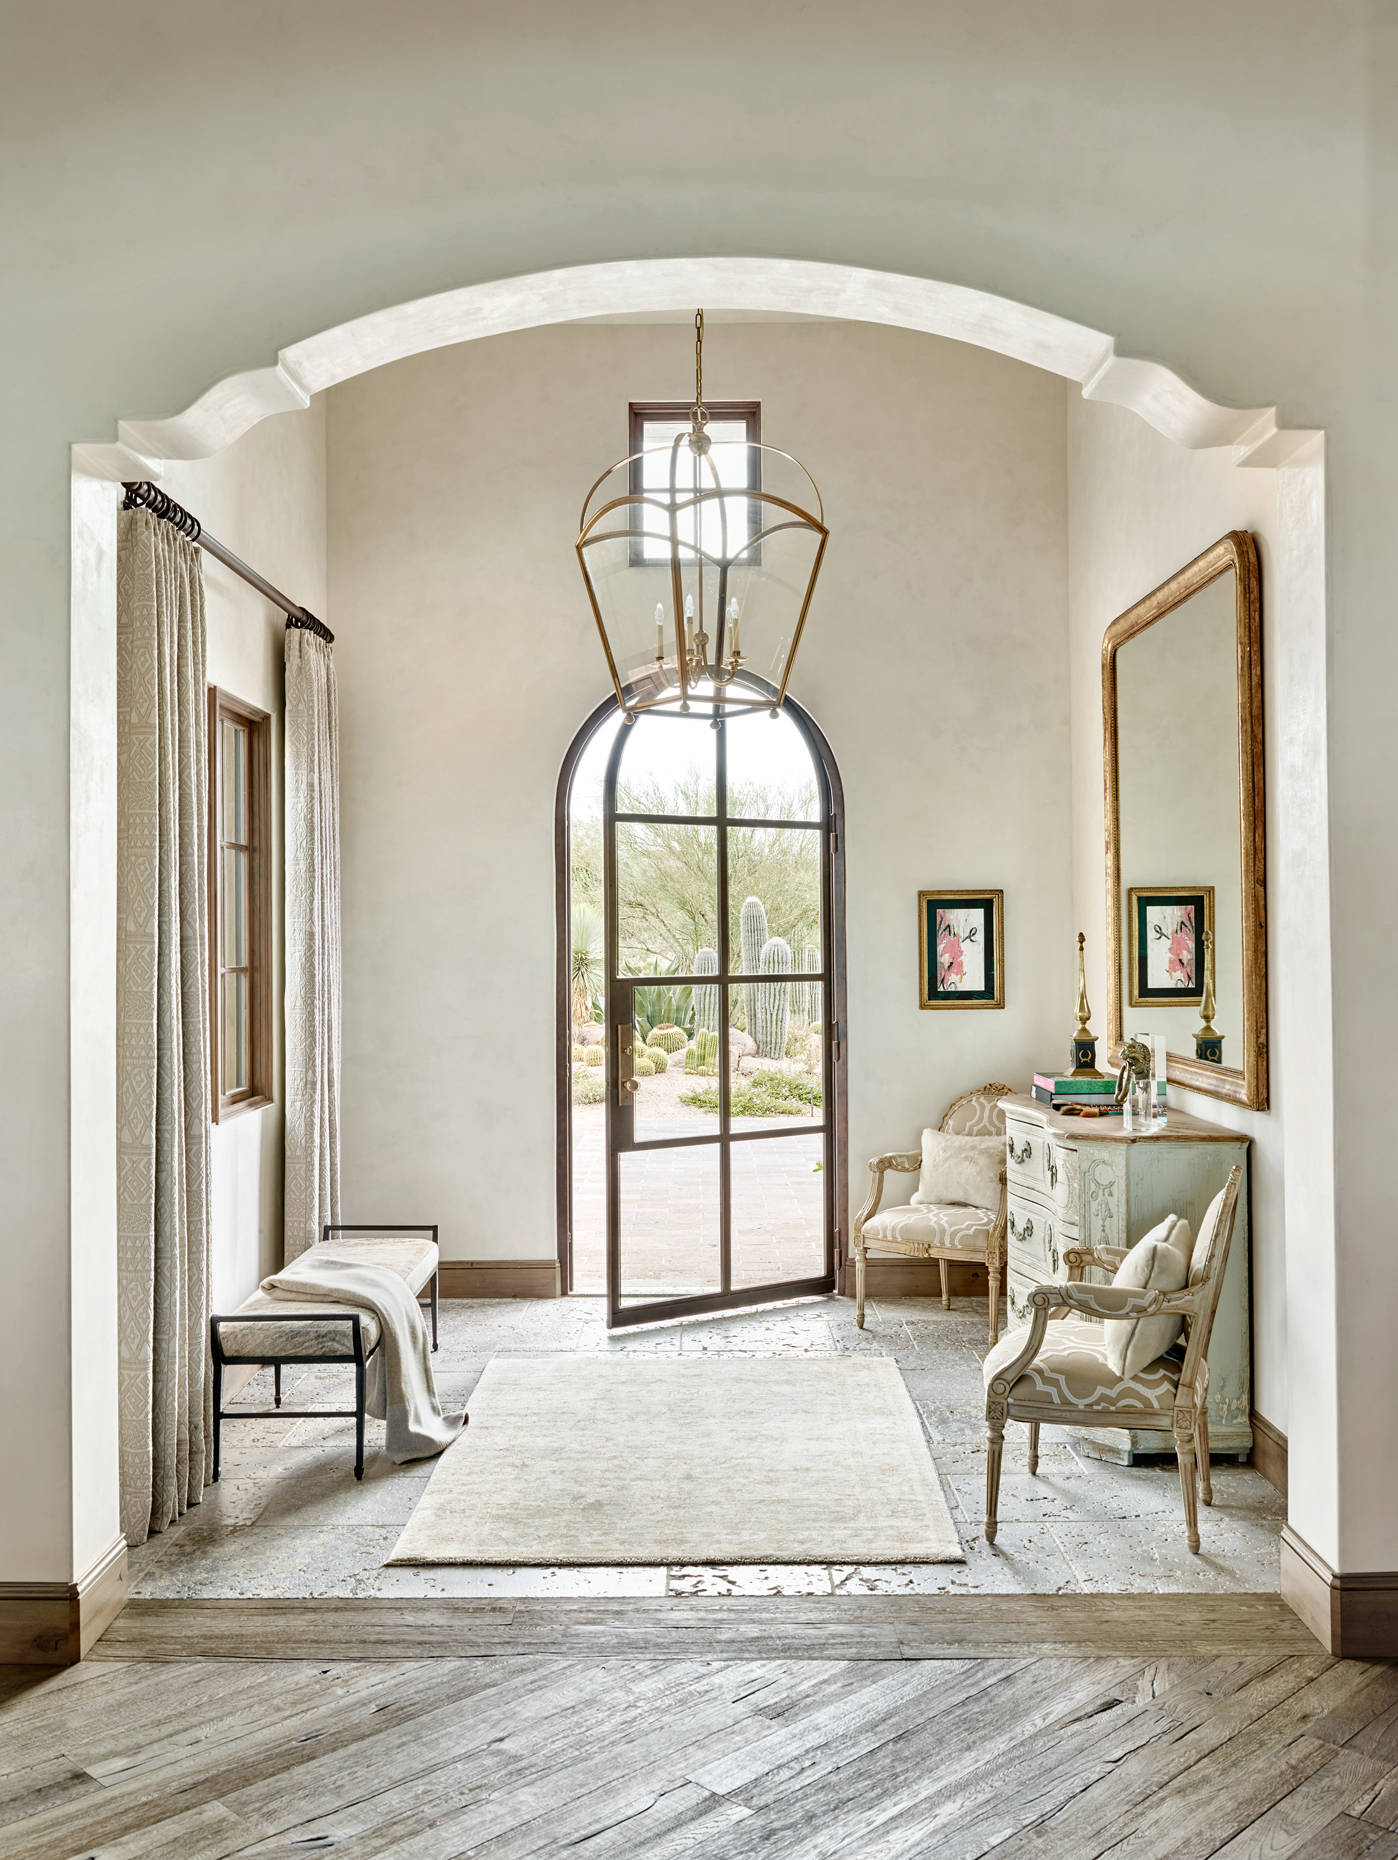 16 Uplifting Mediterranean Entry Hall Designs That Will Welcome You Home